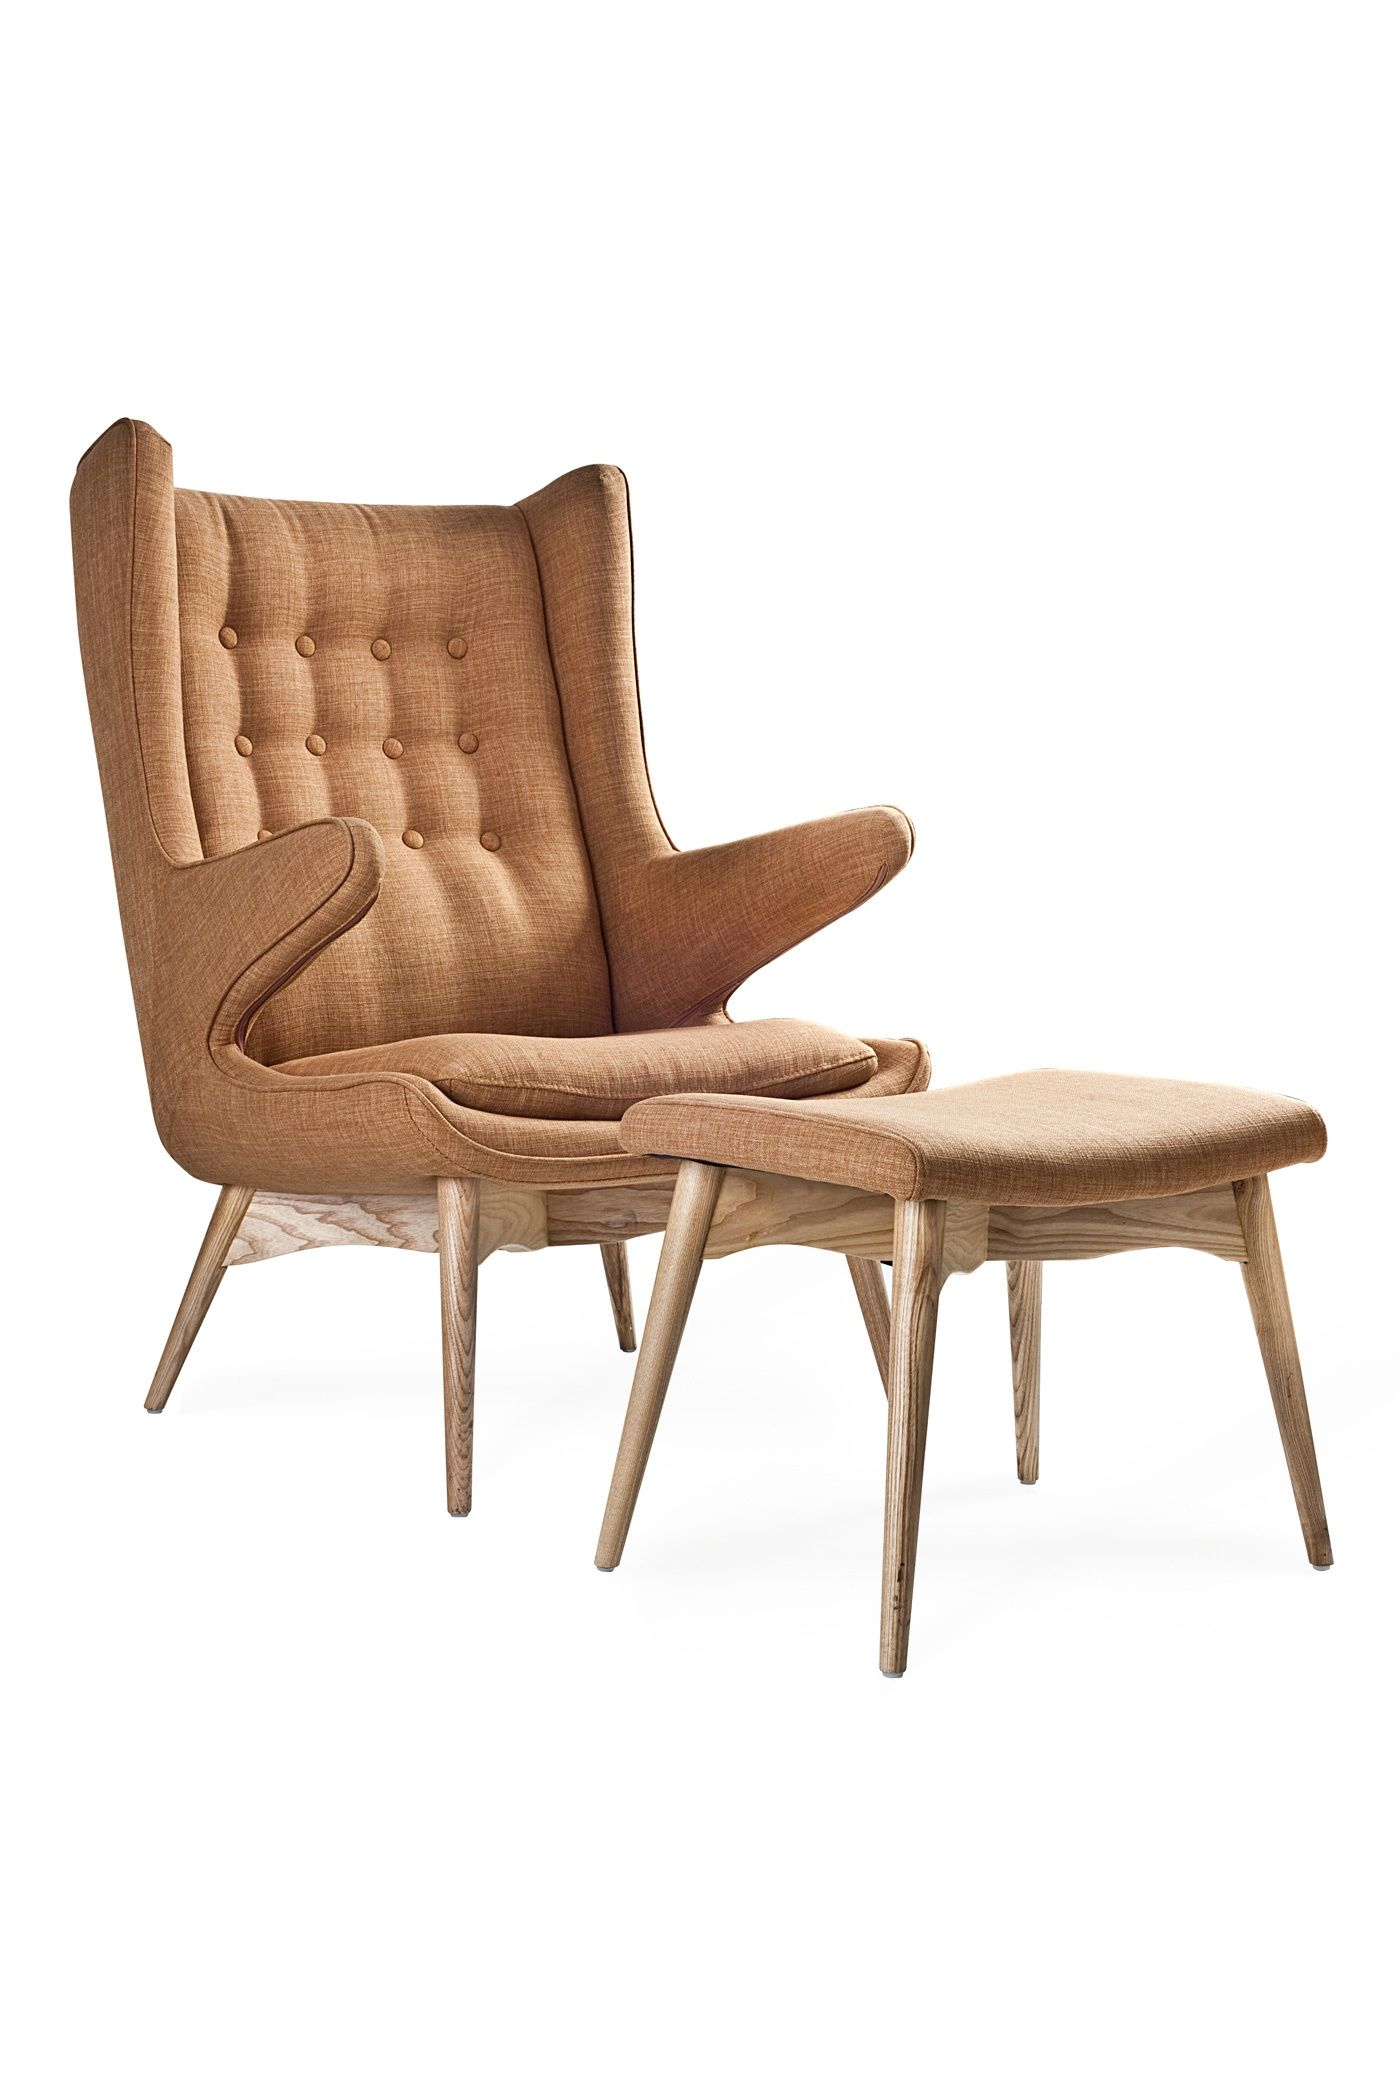 Exceptionnel Merton Arm Chair And Ottoman Camel Fabric / Industry West